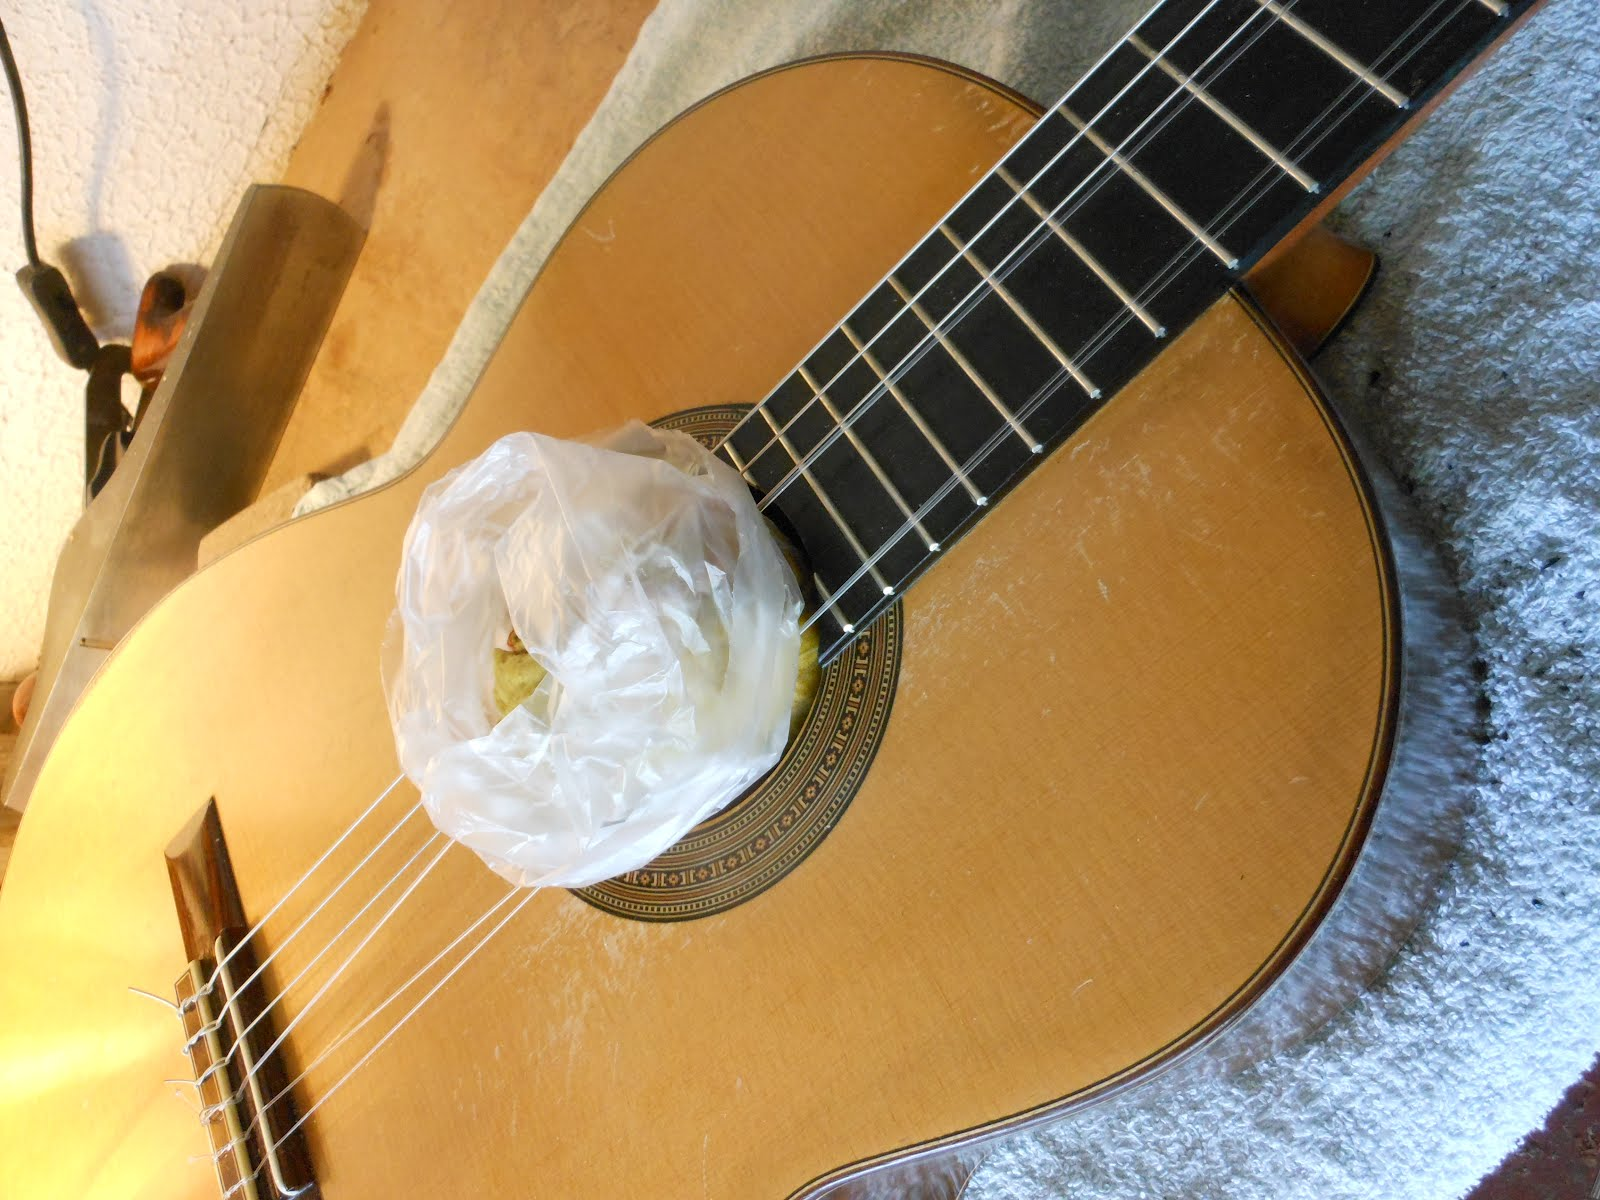 Discover great guitars